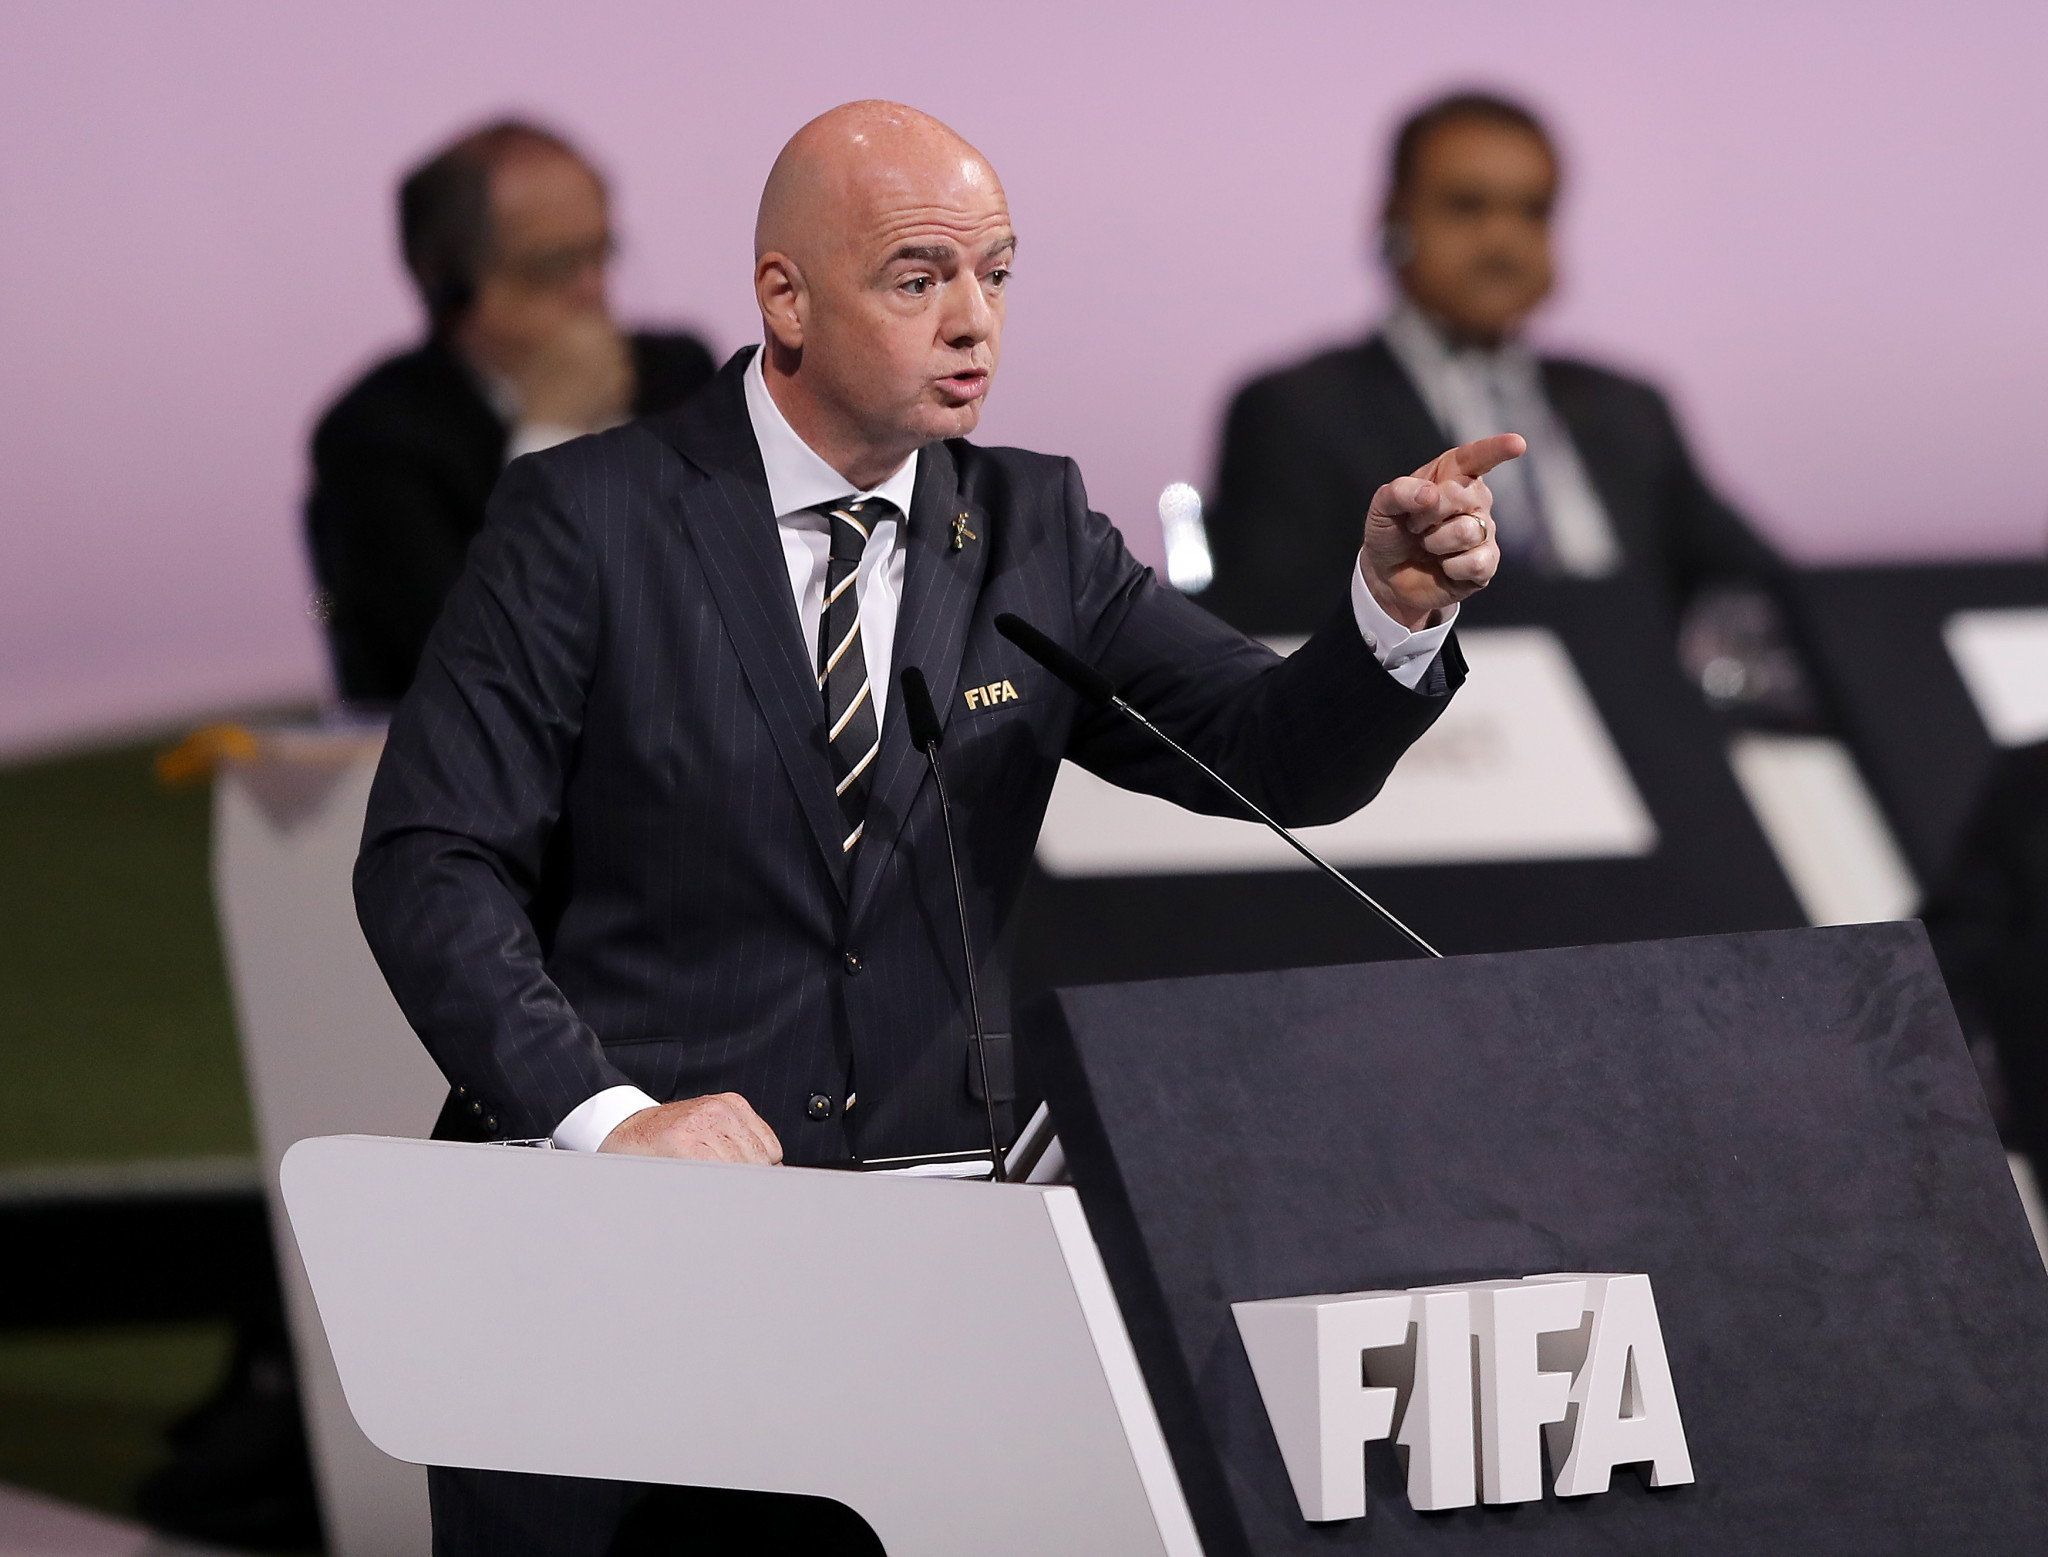 FIFA President Gianni Infantino faces criminal proceedings over his meetings with former Swiss attorney general Michael Lauber ©Getty Images